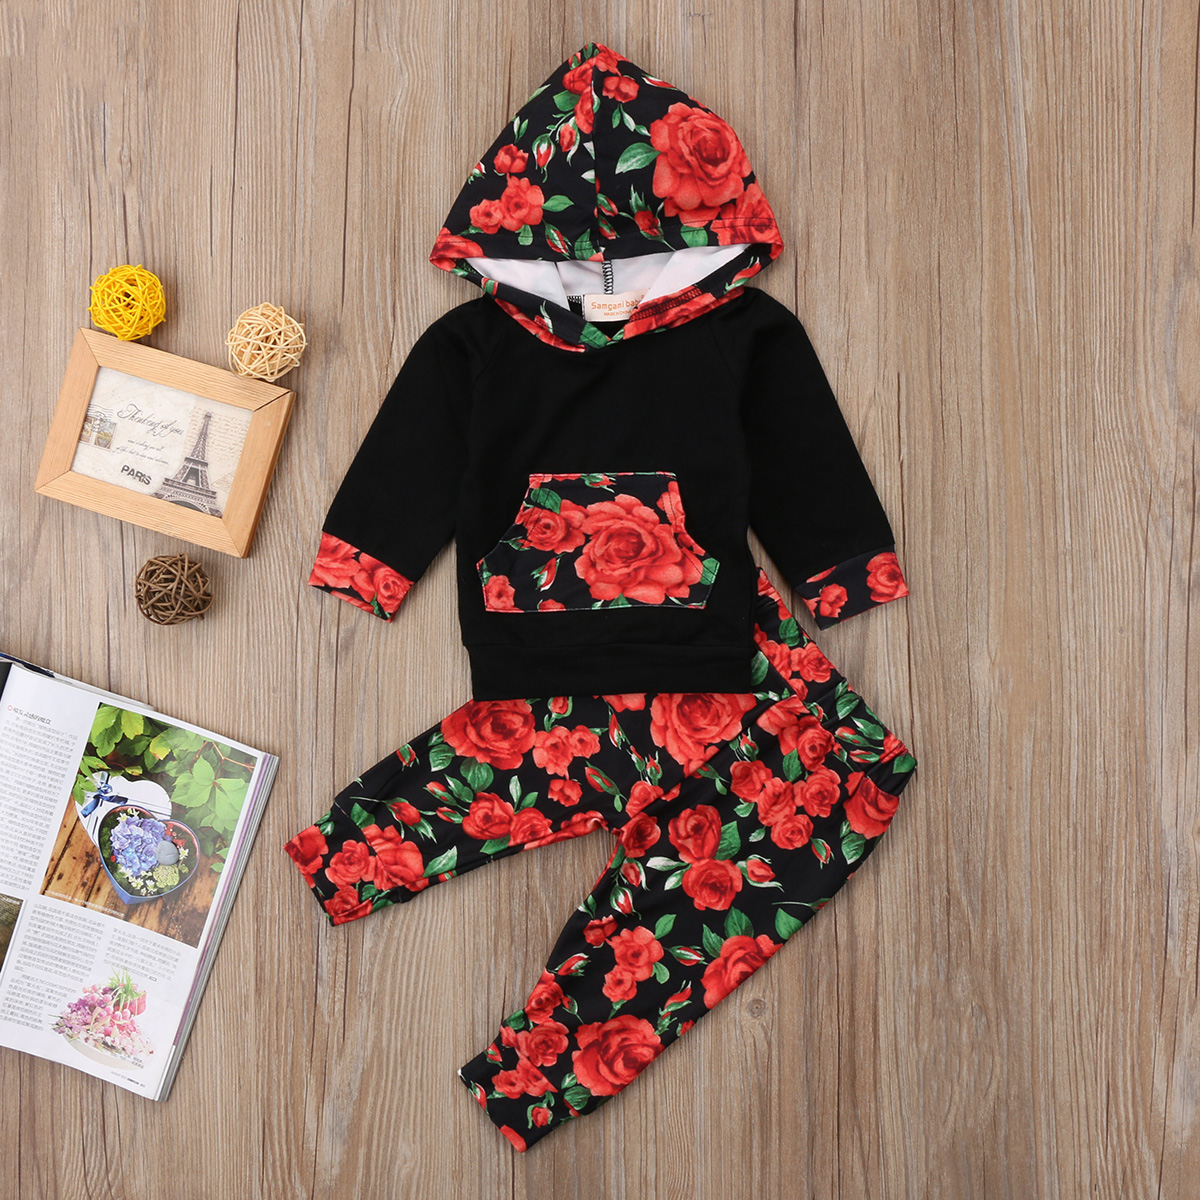 2PCS HOT Sale Baby Girls Cotton Floral Long Sleeve Hooded Tops+Long Pants Fashion Clothes Set 0-24M